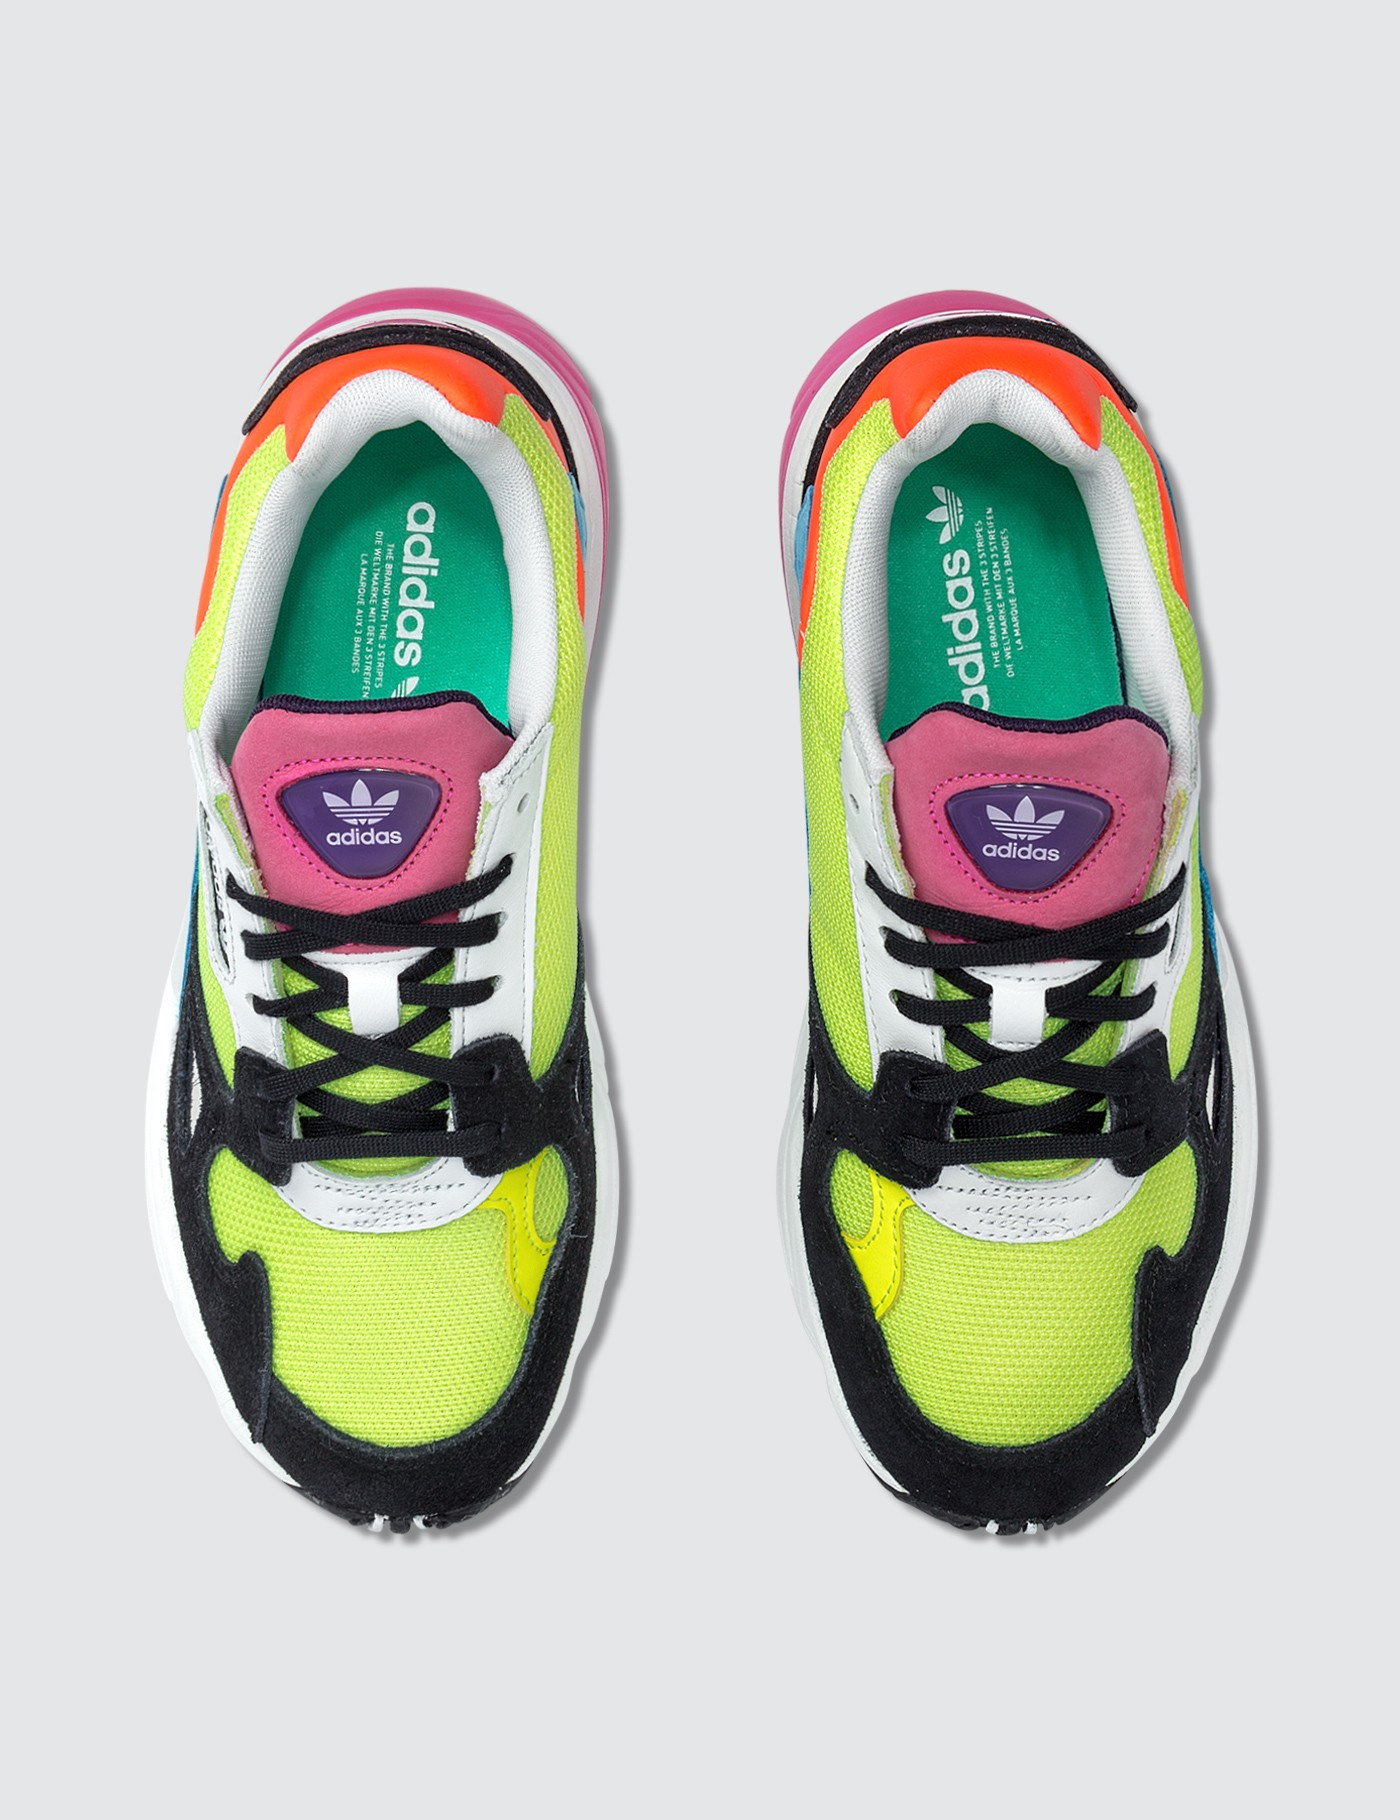 Adidas Originals Falcon Sneaker